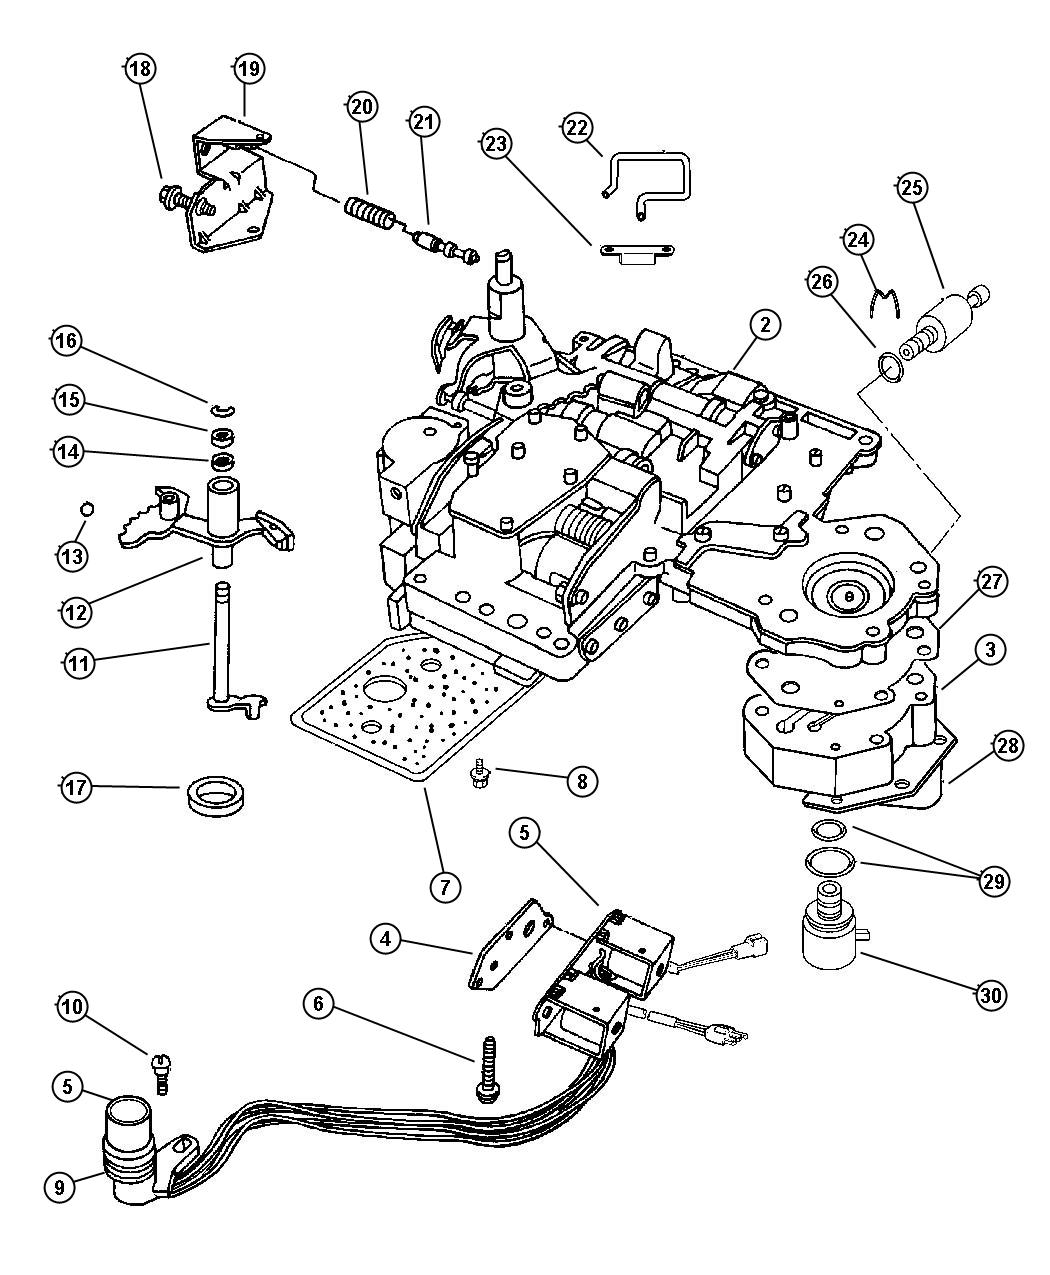 Dodge Transmission Wiring Harness Diagrams 2008 Durango Diagram Ram 46re 47rh Avenger 1500